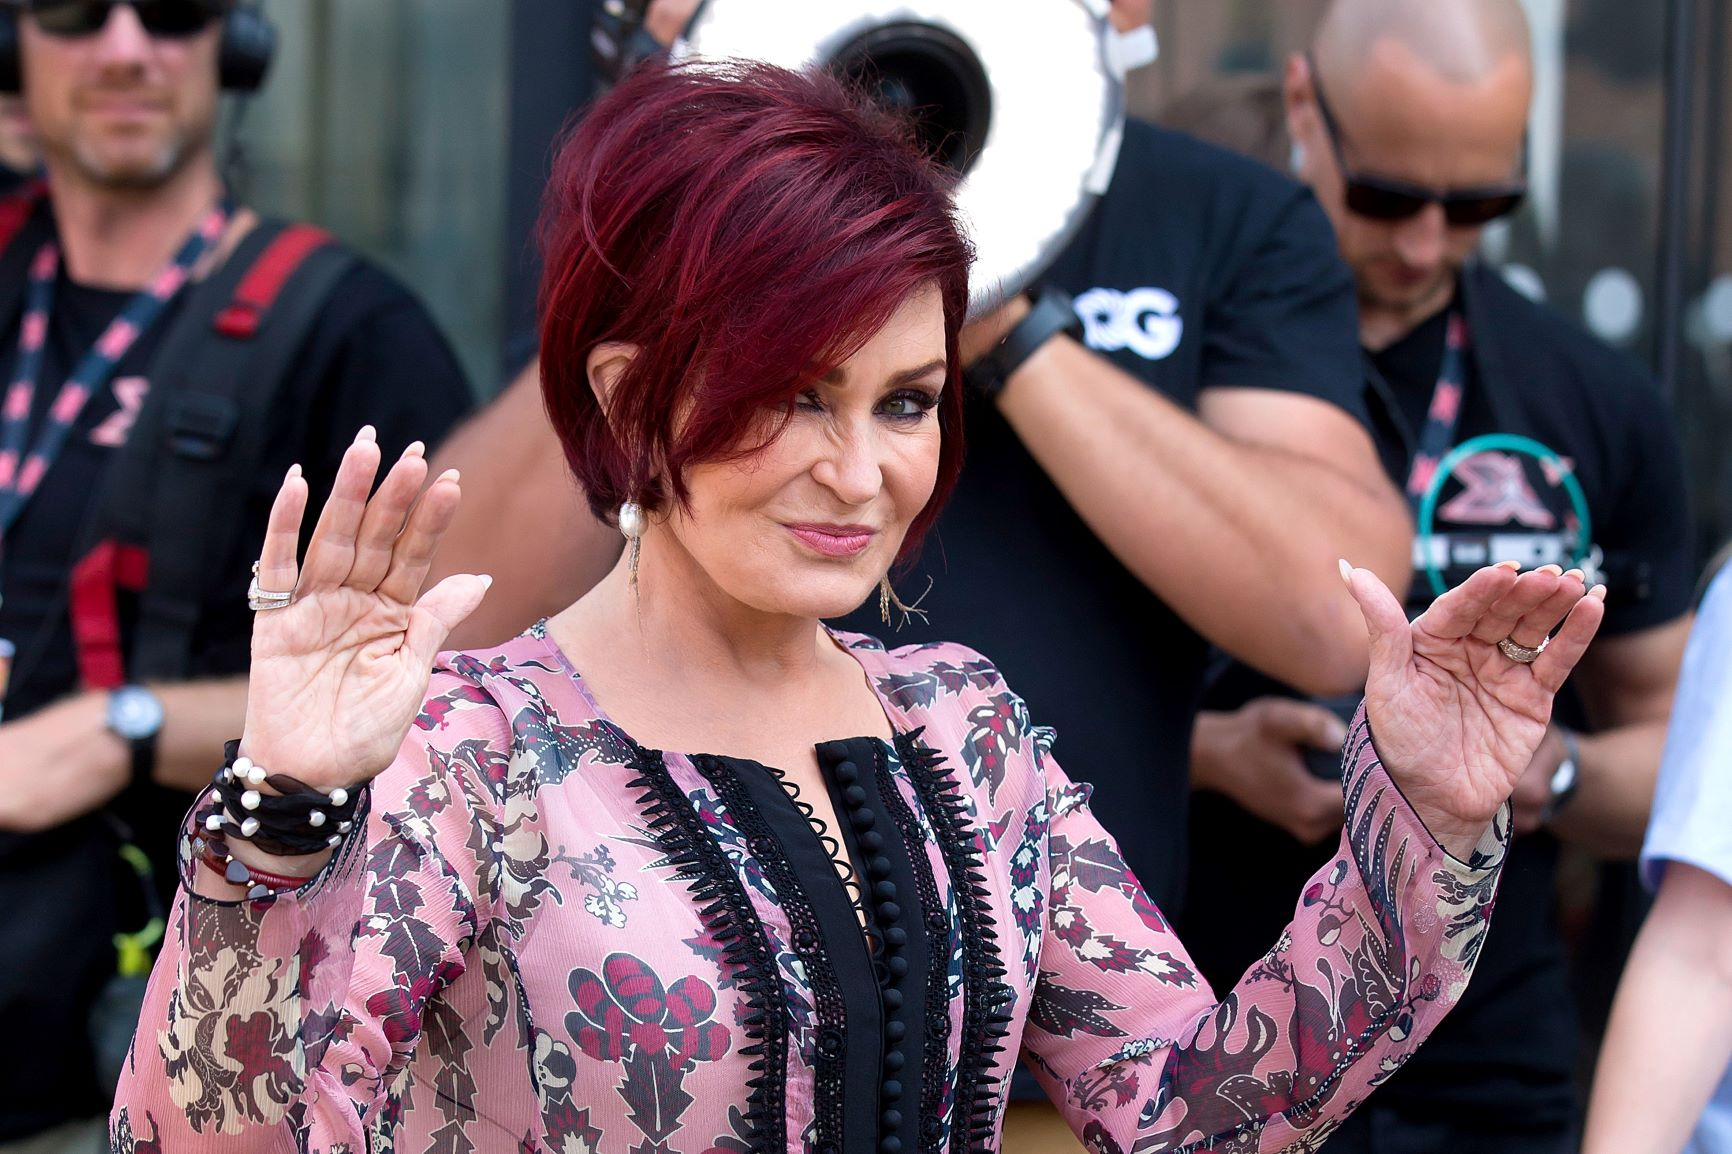 Sharon Osbourne debuts new grey hair: How you can make the transition